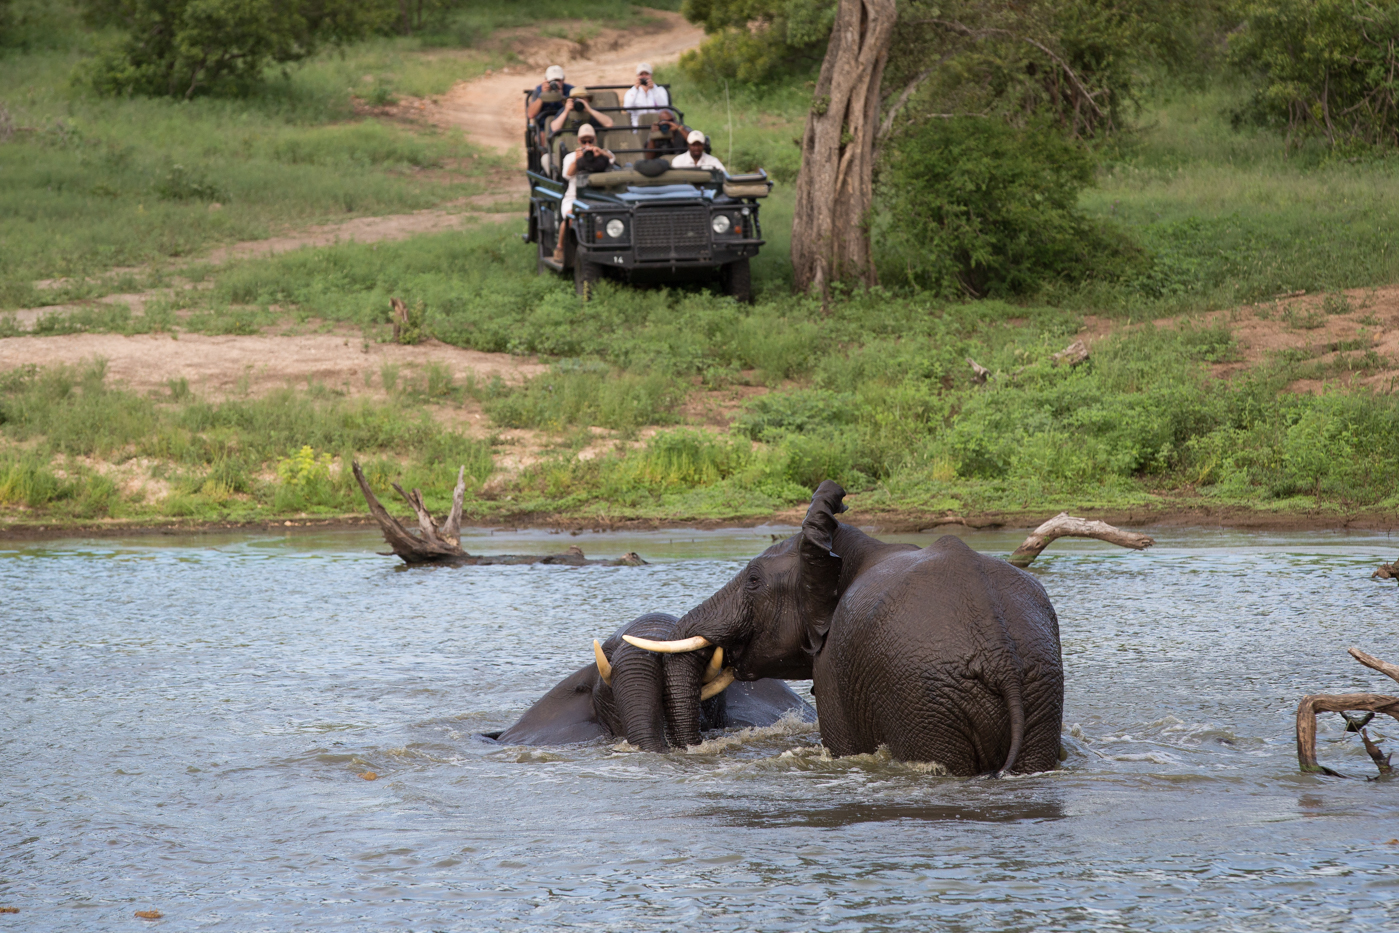 Elephant Swim vehicle JT